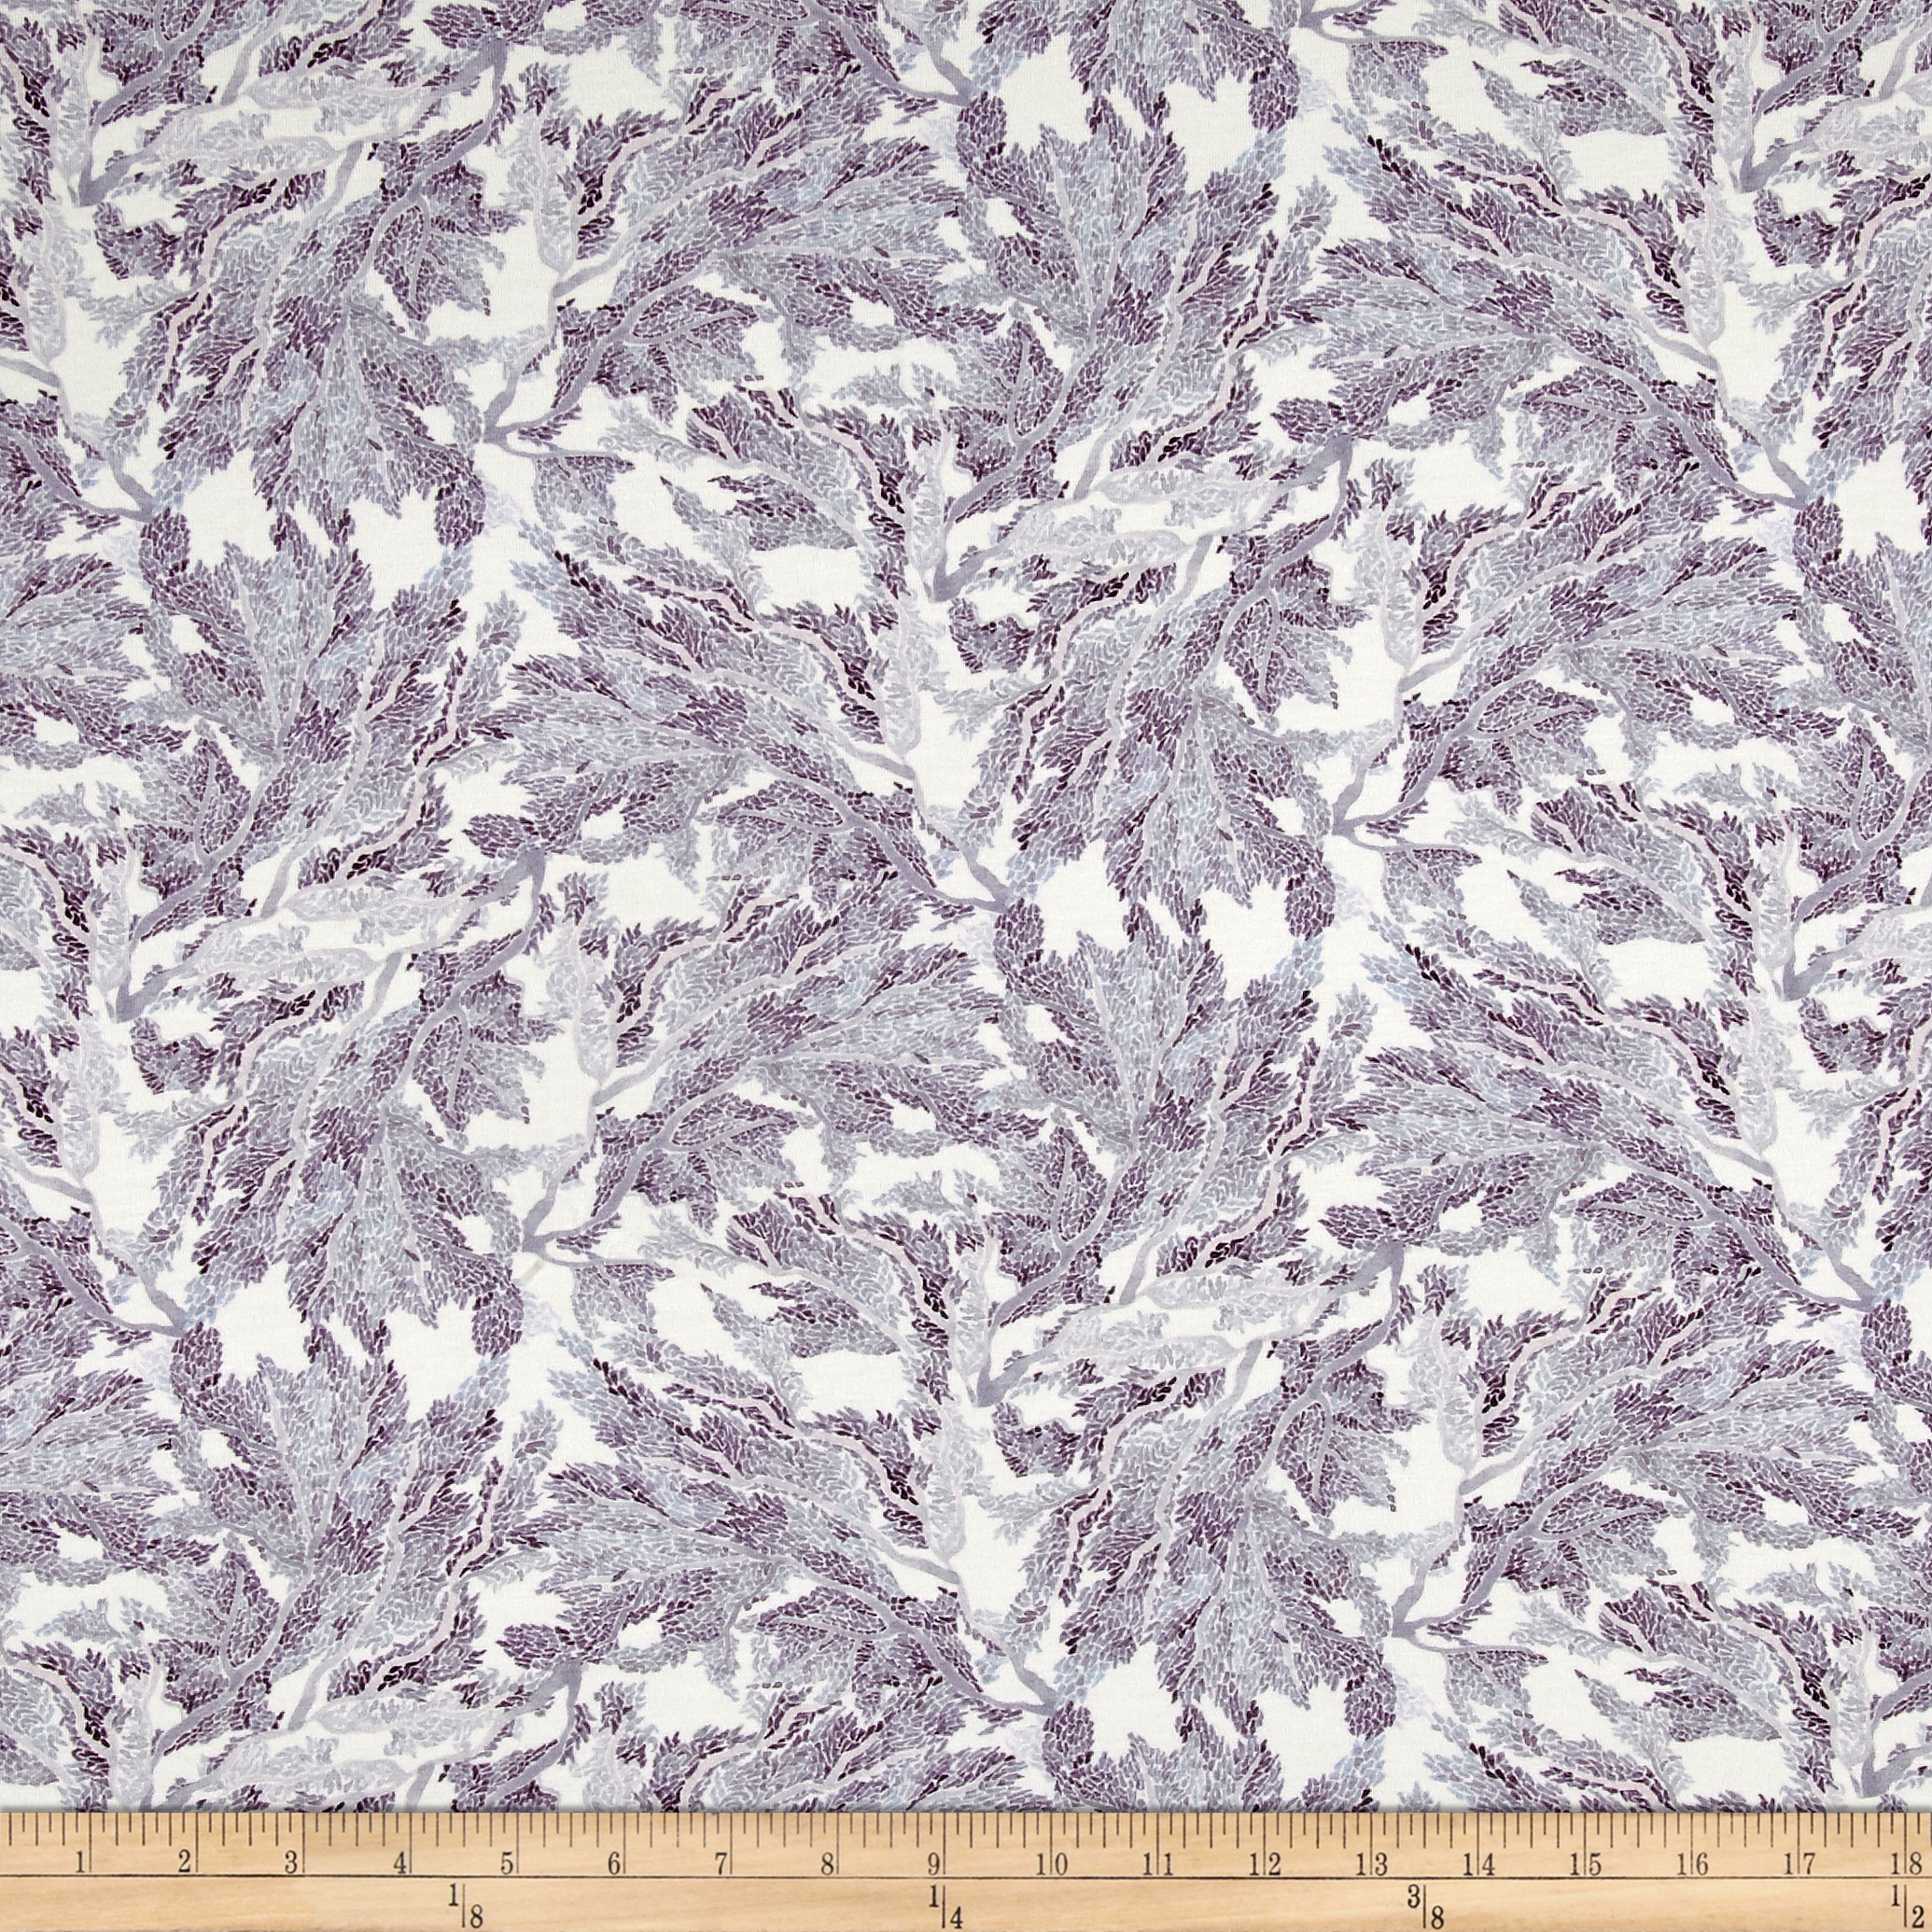 Liberty of London Dufour Jersey Knit Marine Purple Fabric by Liberty Of London in USA